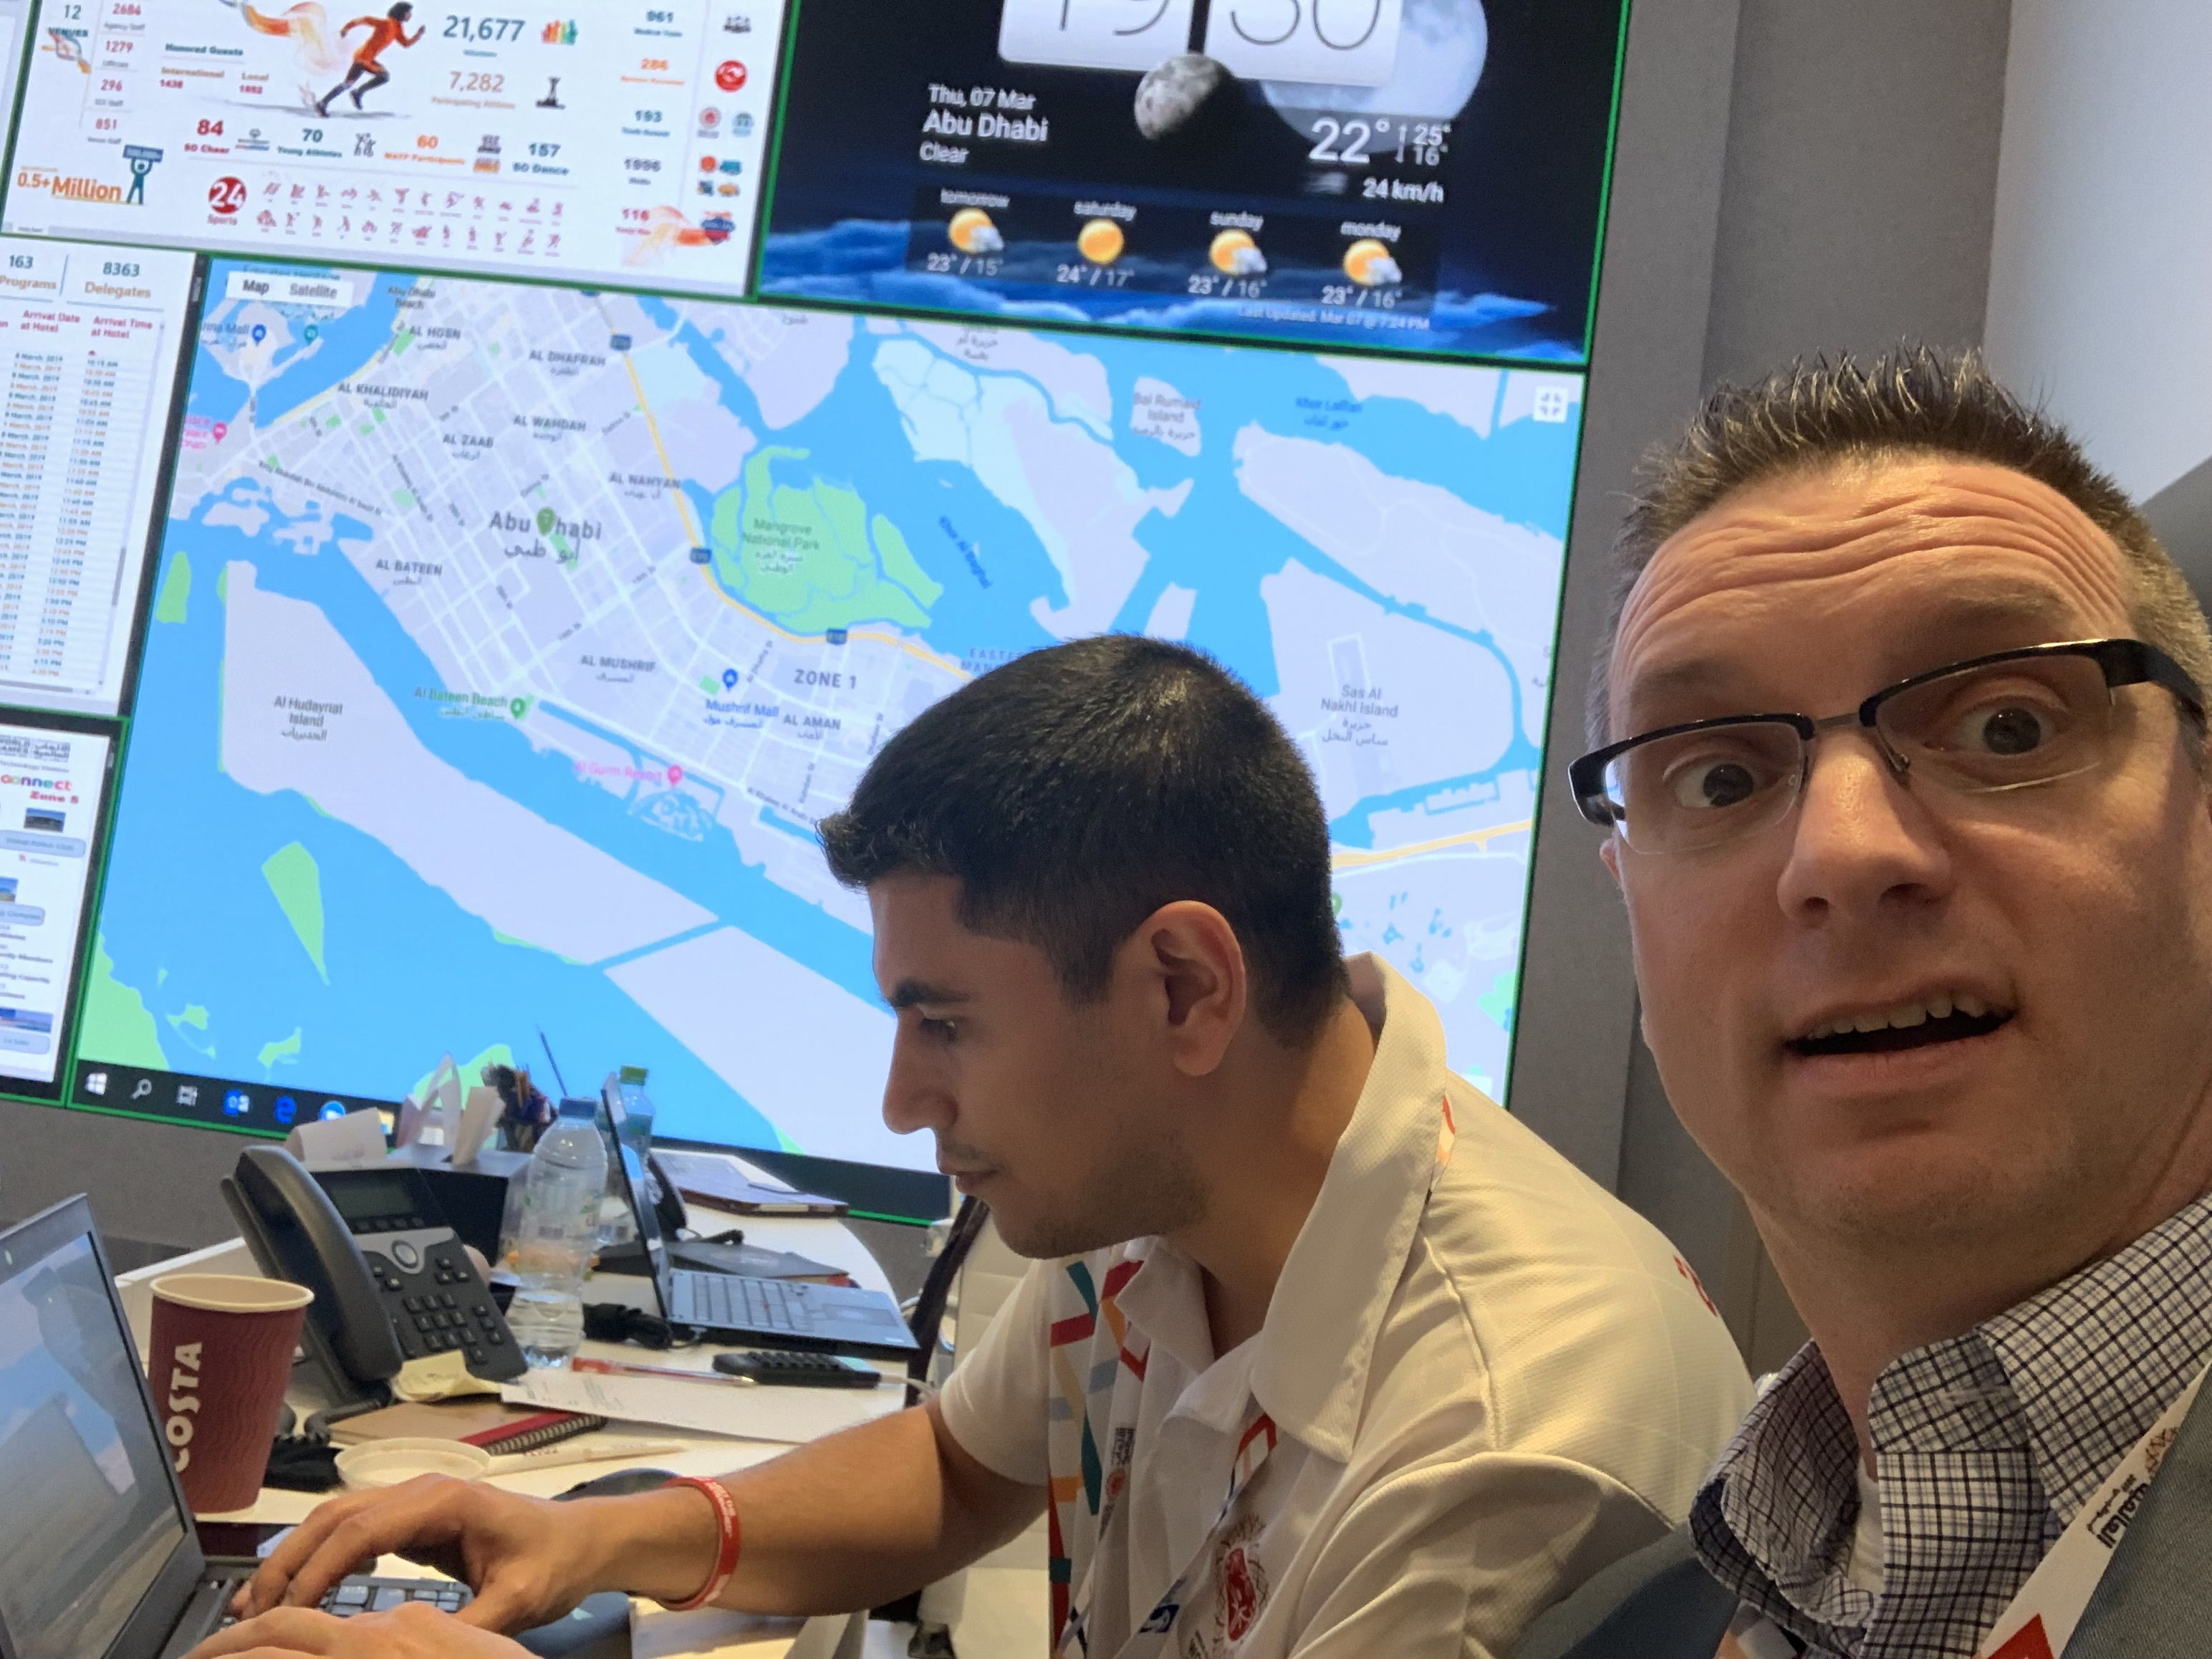 Dr. Seidenberg makes a comical face while sitting next to Dr. Samir Zeynalov, Special Olympics' medical operations manager, who is typing on a laptop. Behind them are maps on a screen. Zeynalov is wearing a white Oxford shirt and a lanyard.